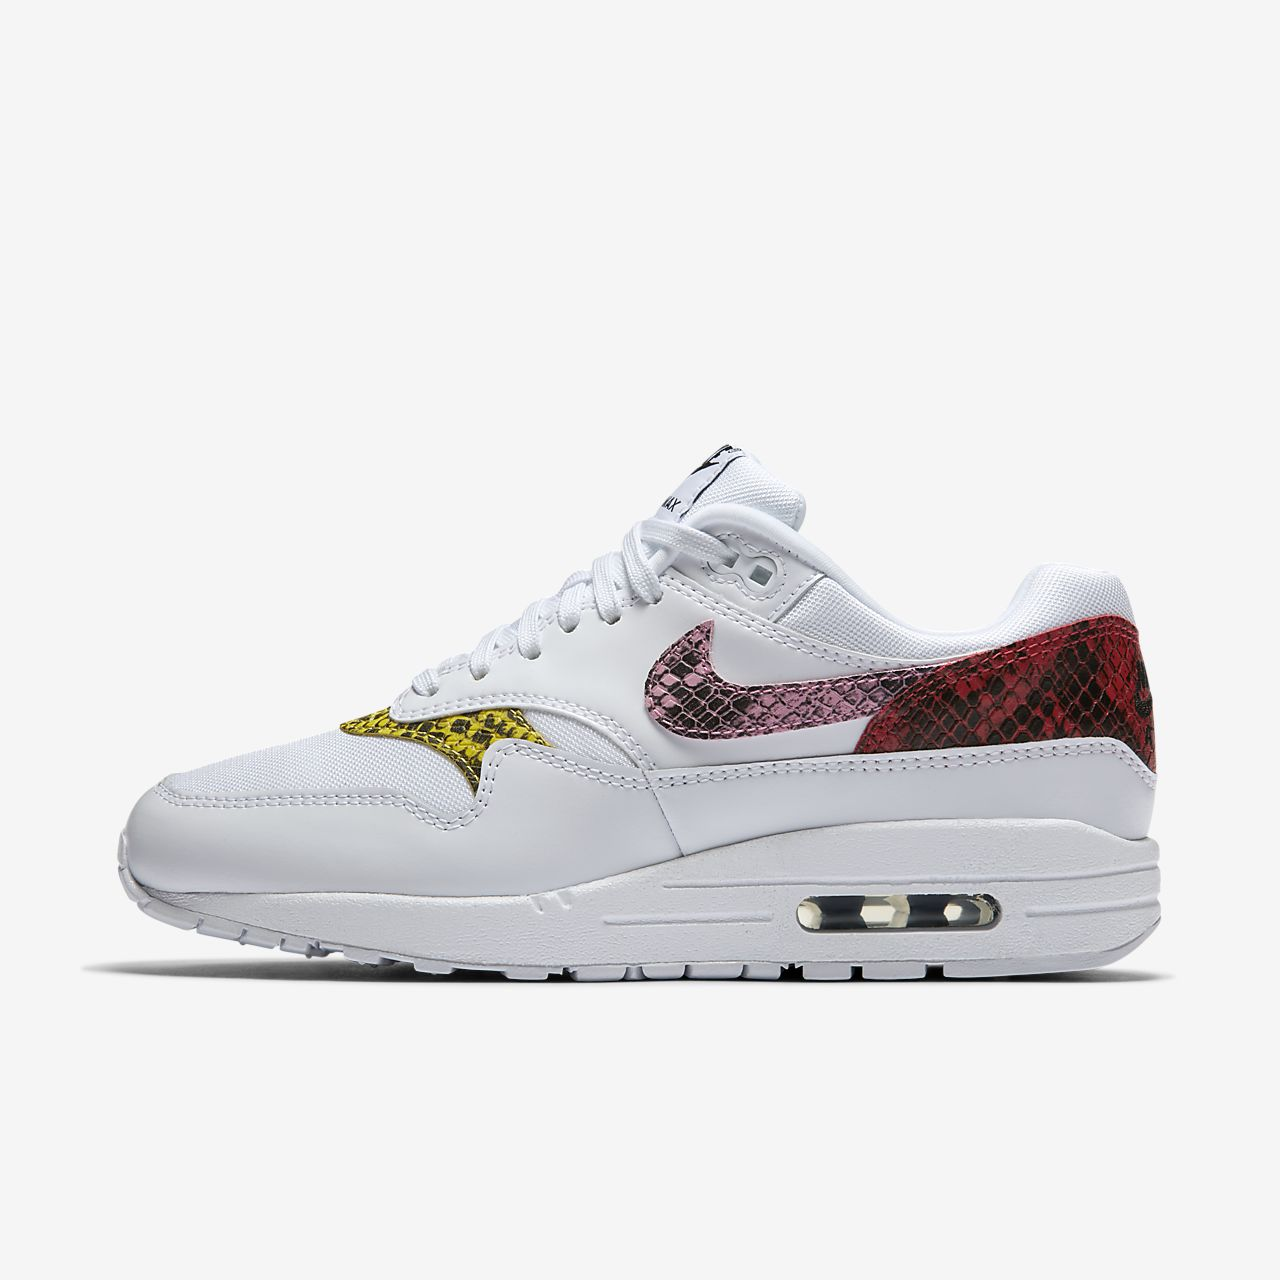 competitive price 30013 26f15 ... Chaussure Nike Air Max 1 Premium Animal pour Femme